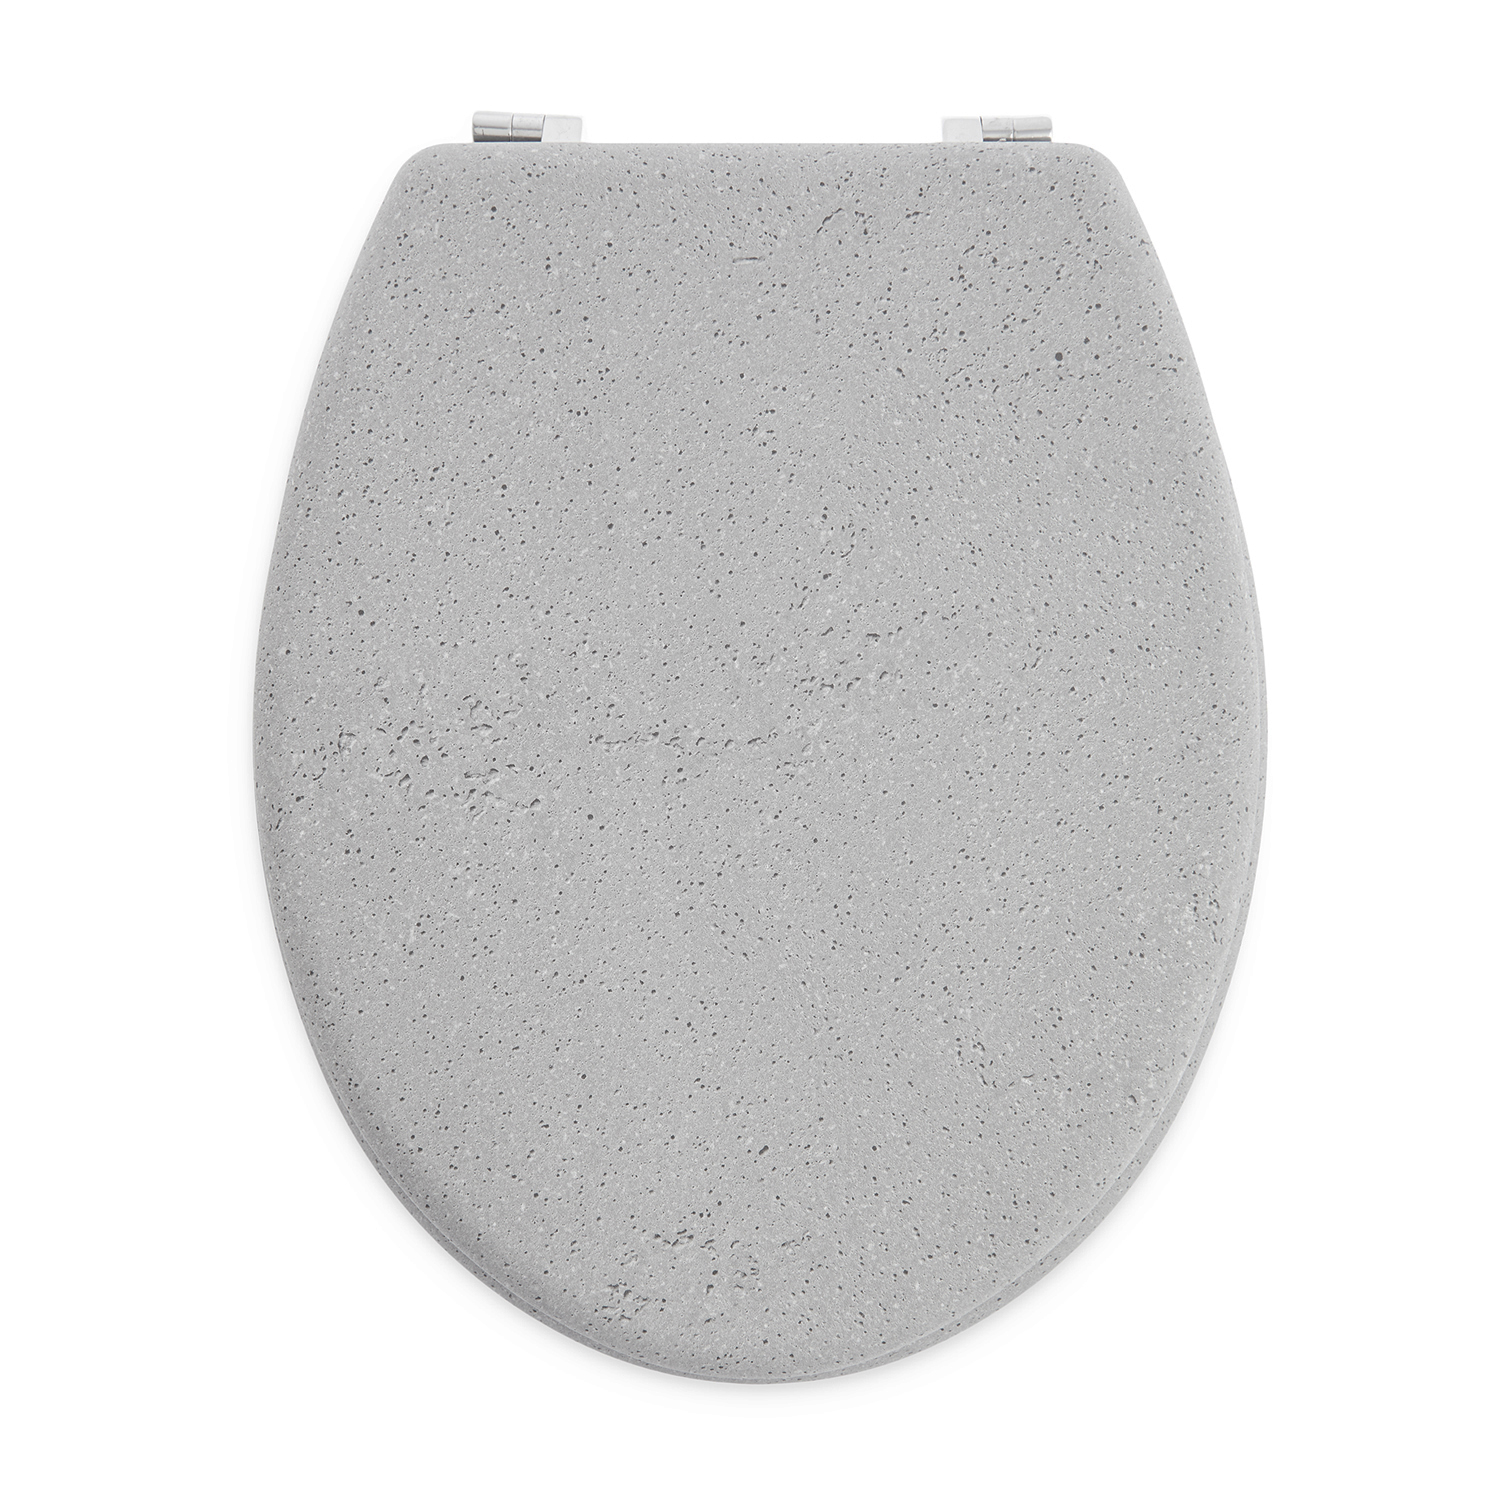 Stone Effect Toilet Seat - Grey